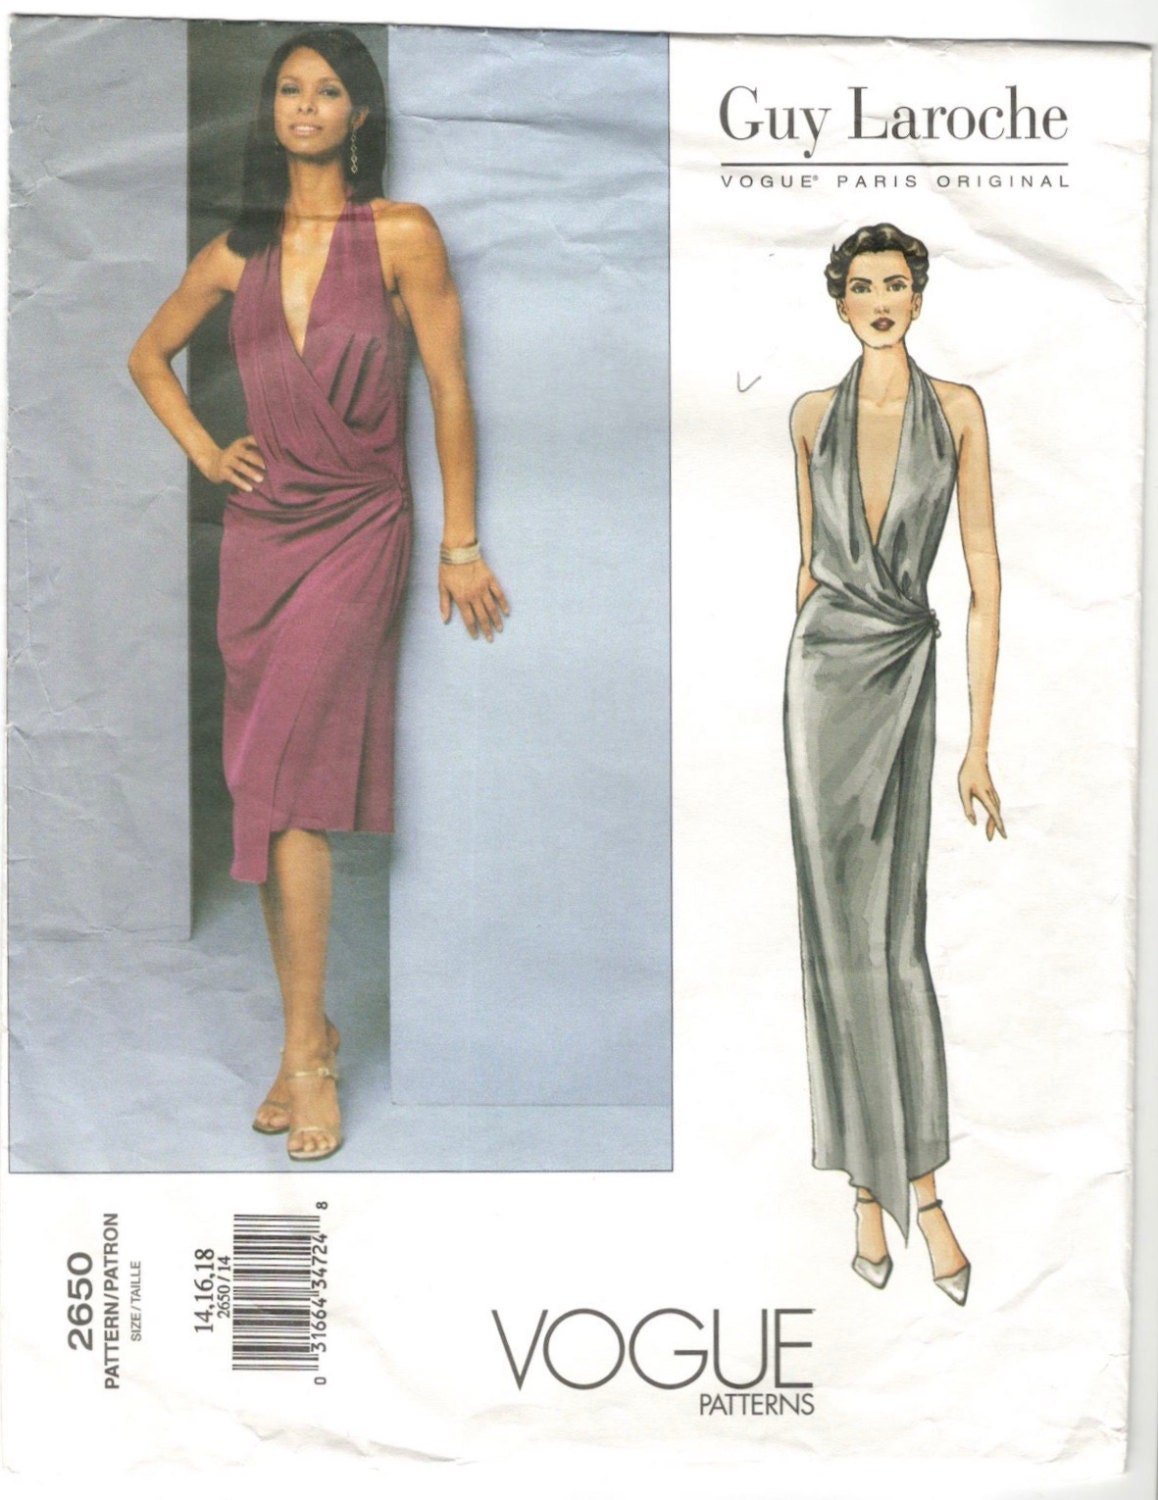 Fall 2001 Mei Xiao Zhou for Guy Laroche bias dress pattern Vogue 2650